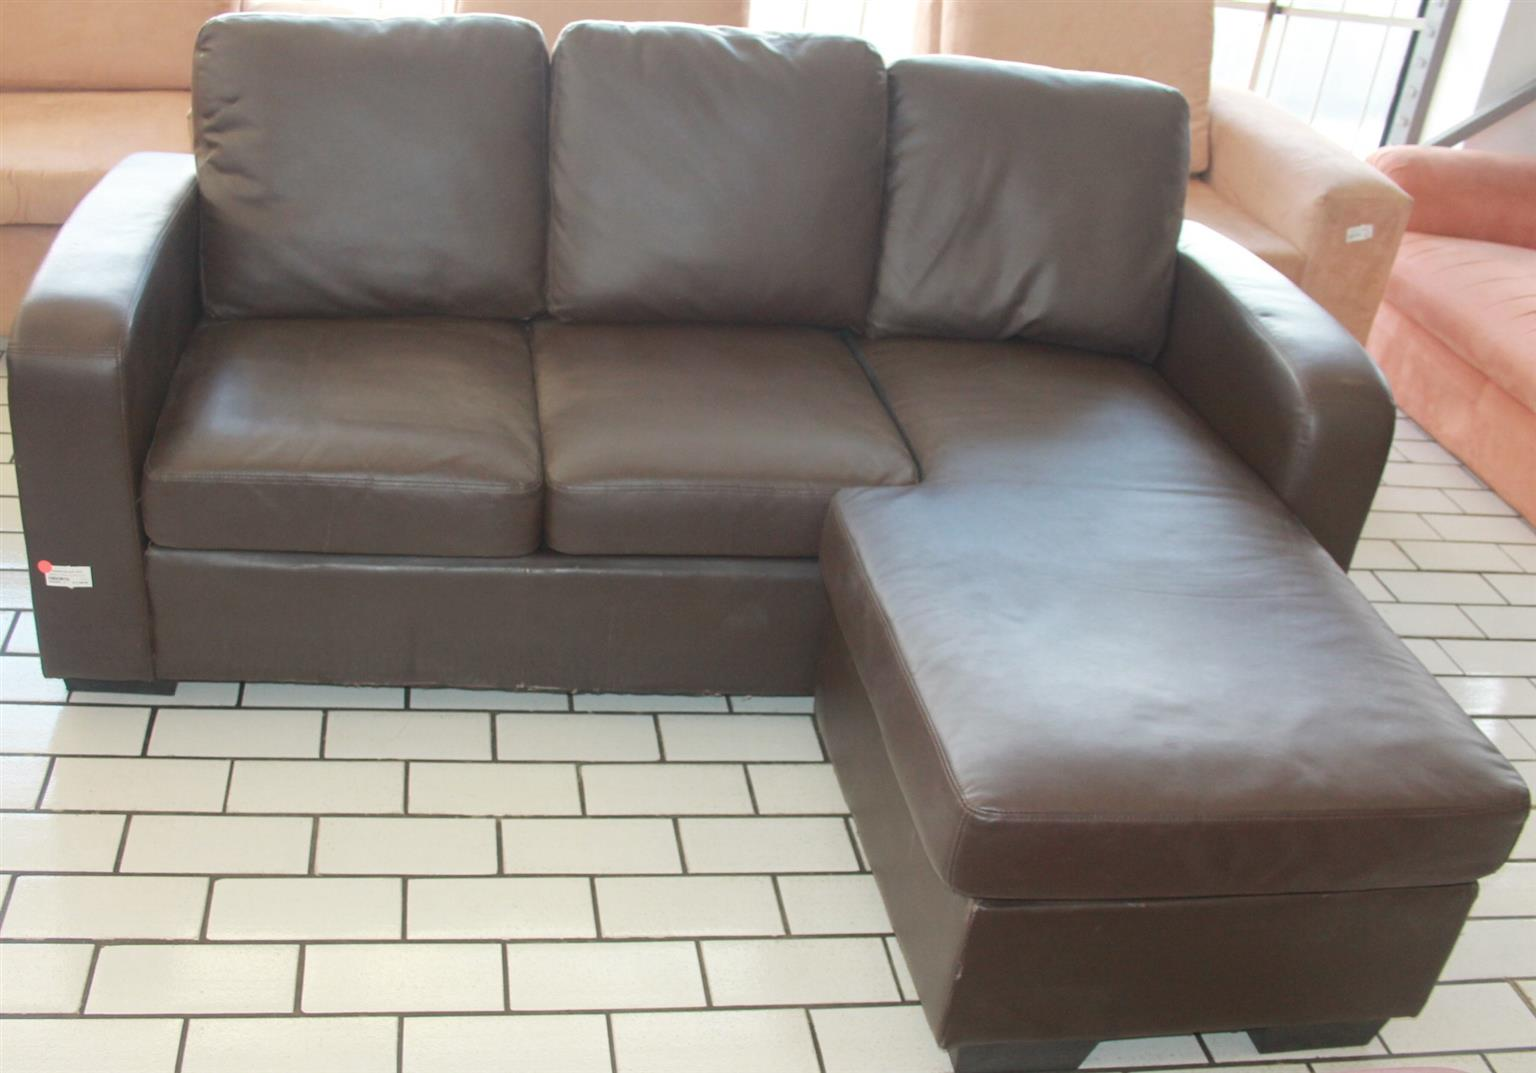 L shape lounge suite S025480a #Rosettenvillepawnshop